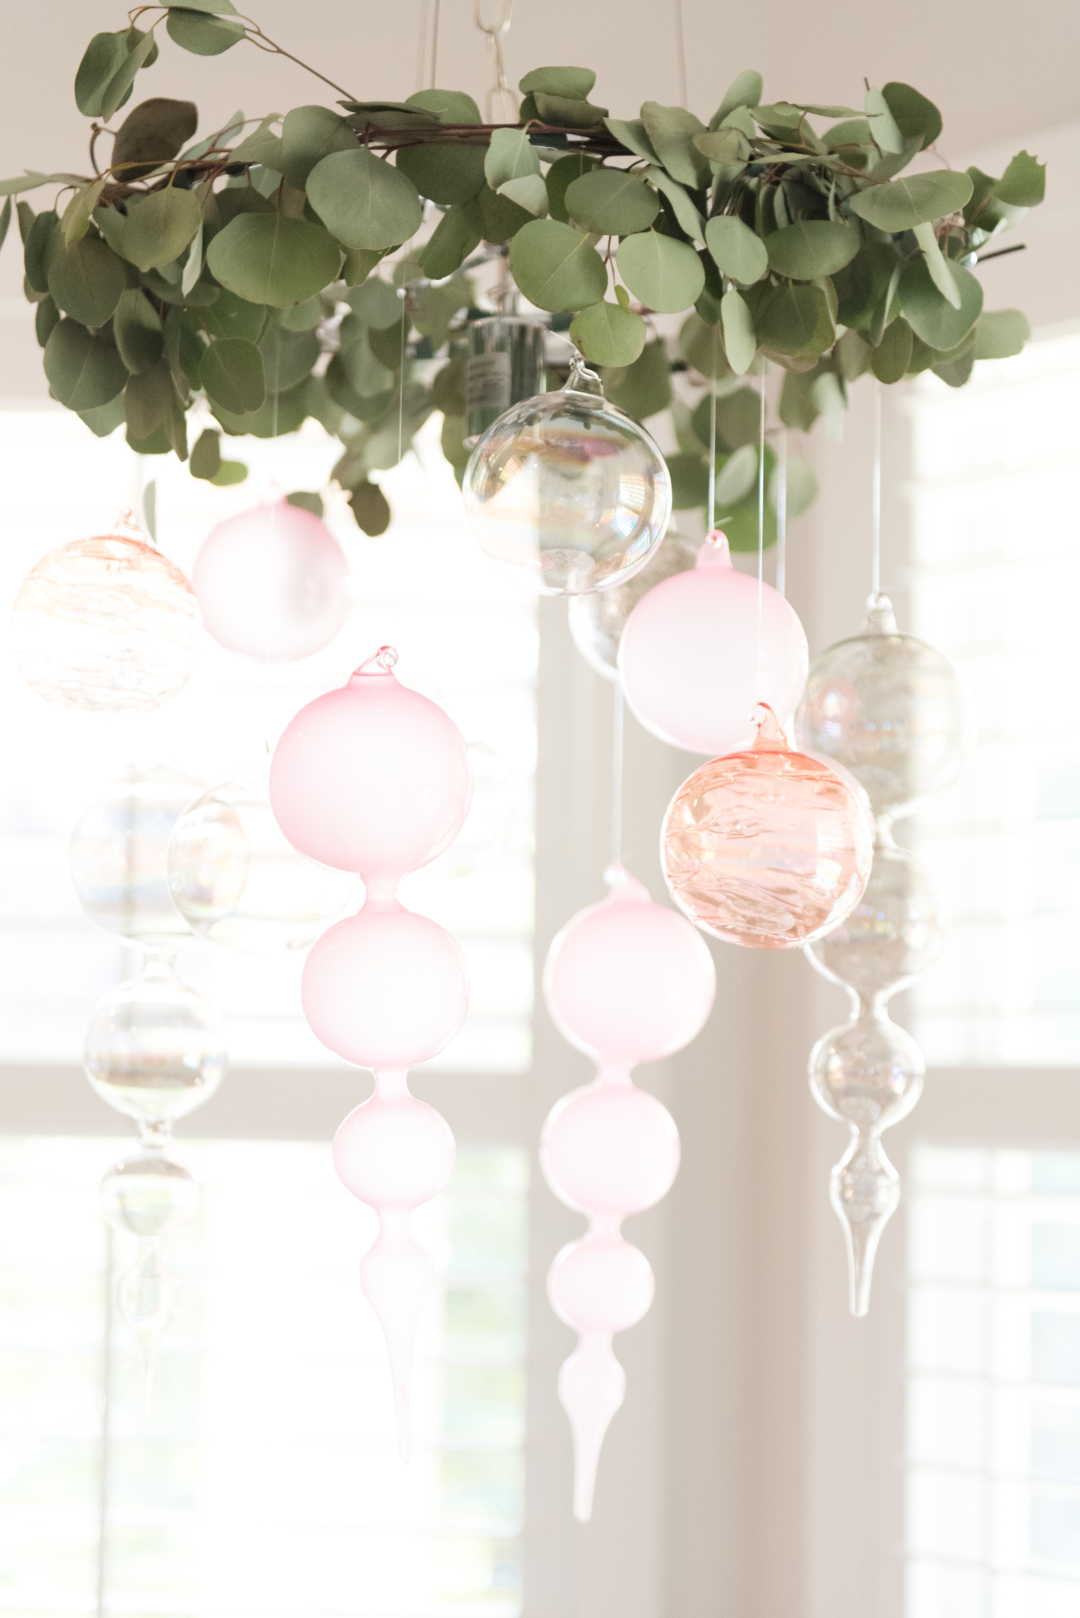 How to decorate with ornaments